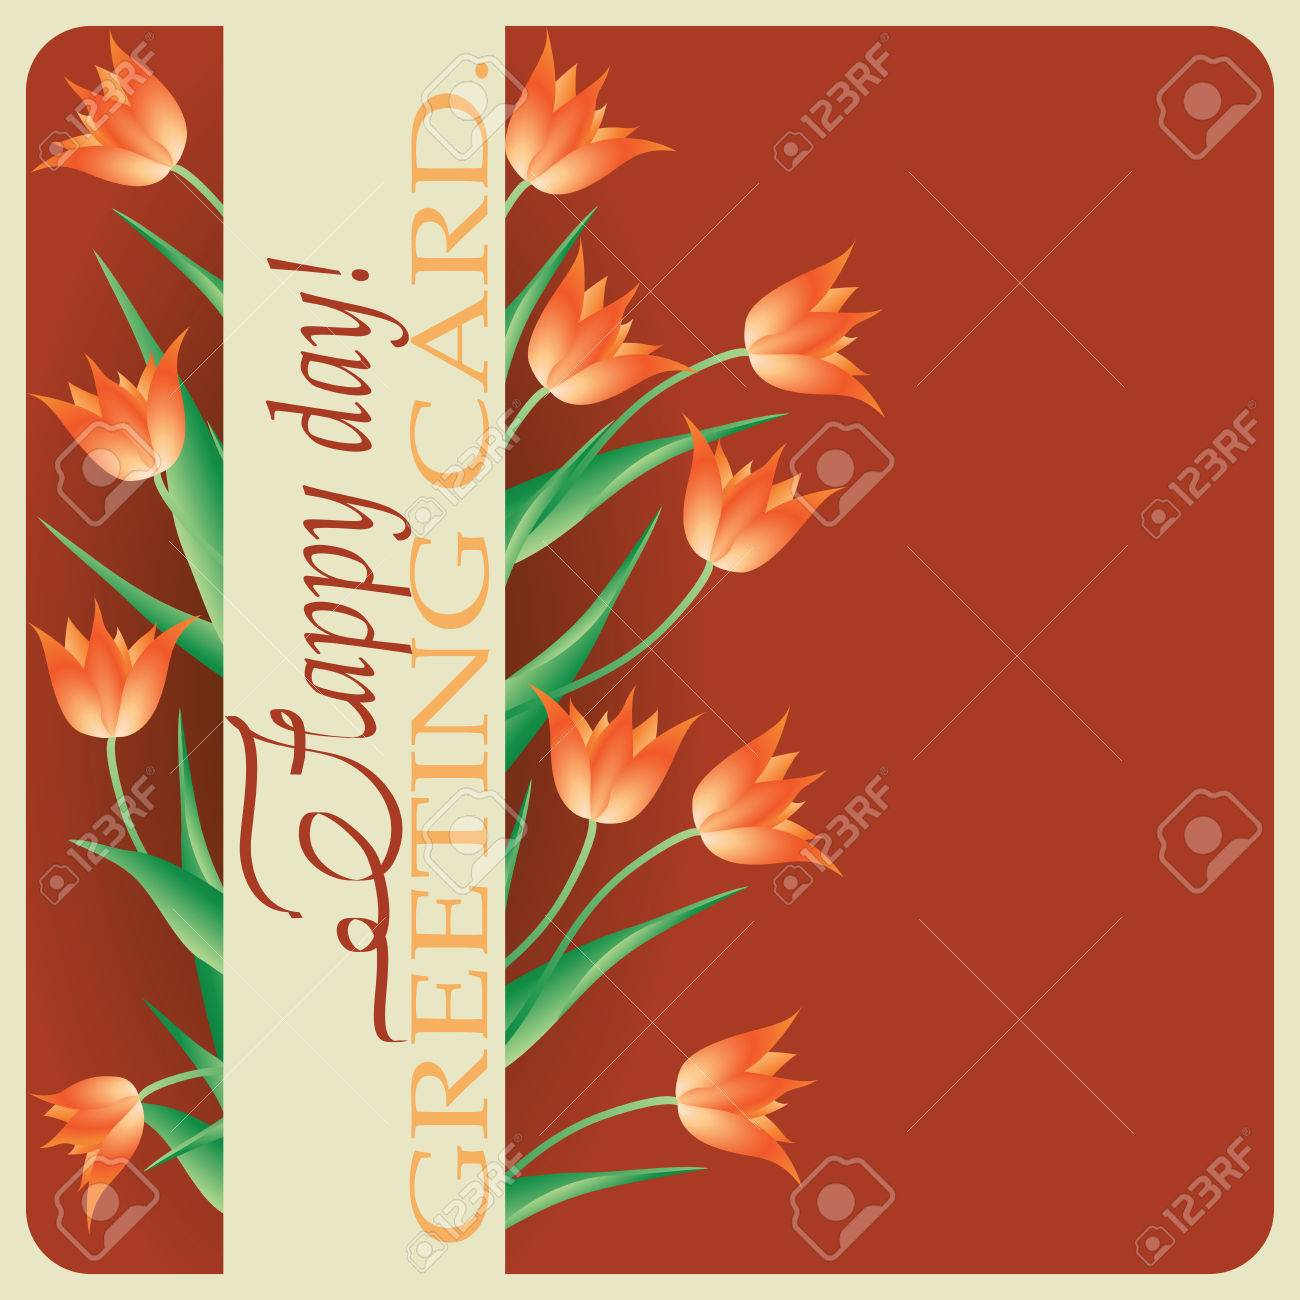 Tulipsspring Greetings Design Greeting Cards Happy Birthday